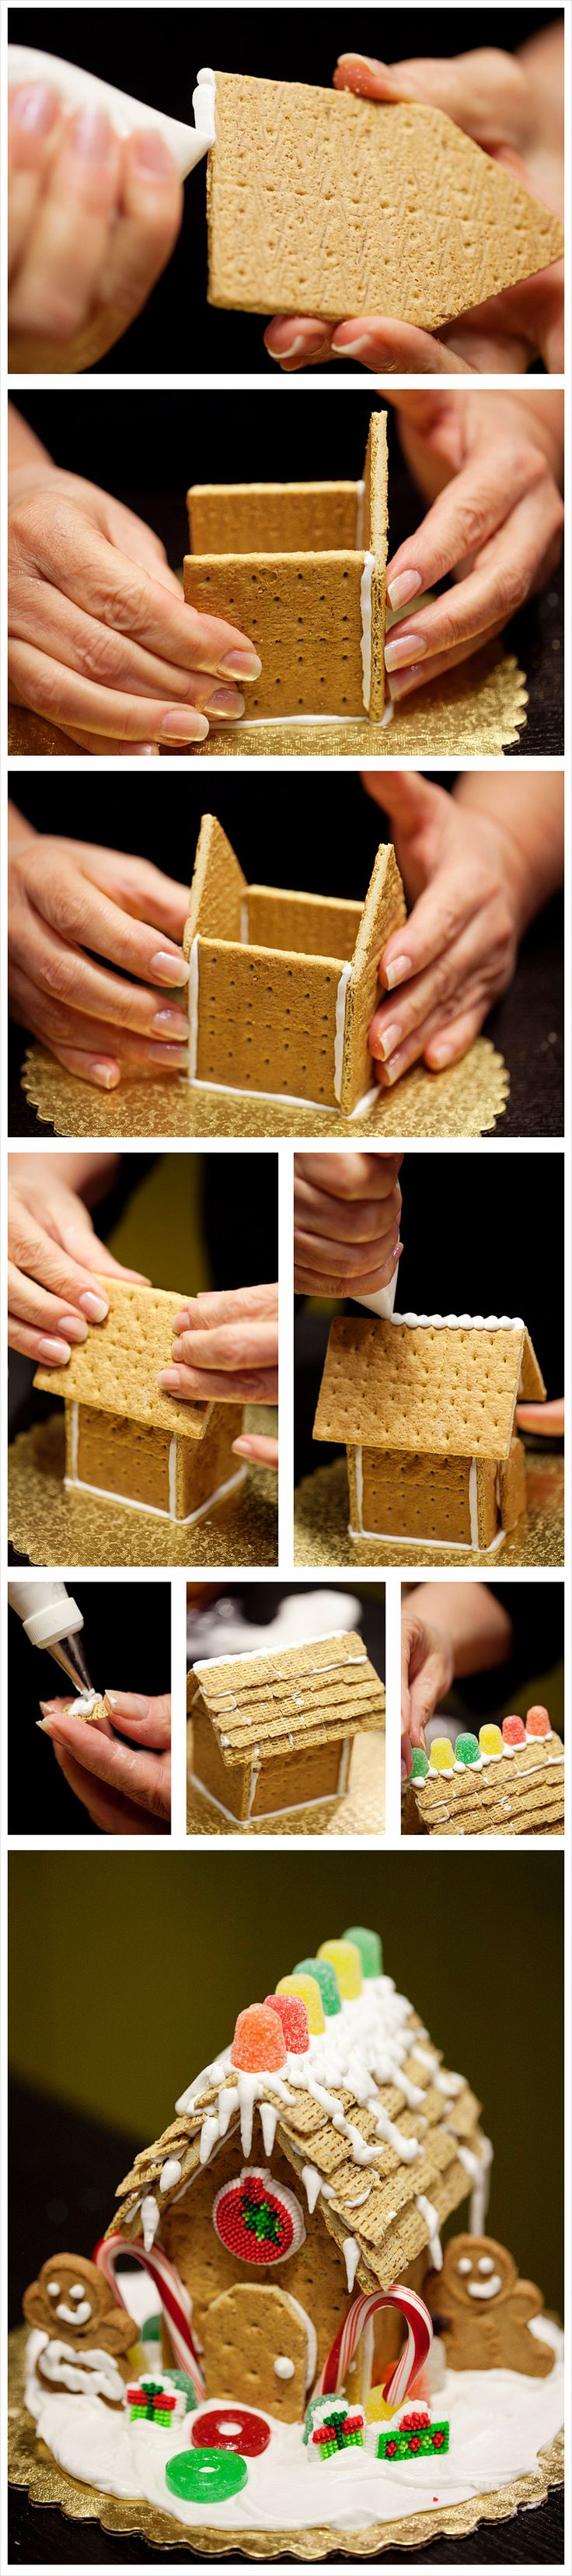 Mini Gingerbread Houses made out of Graham Crackers